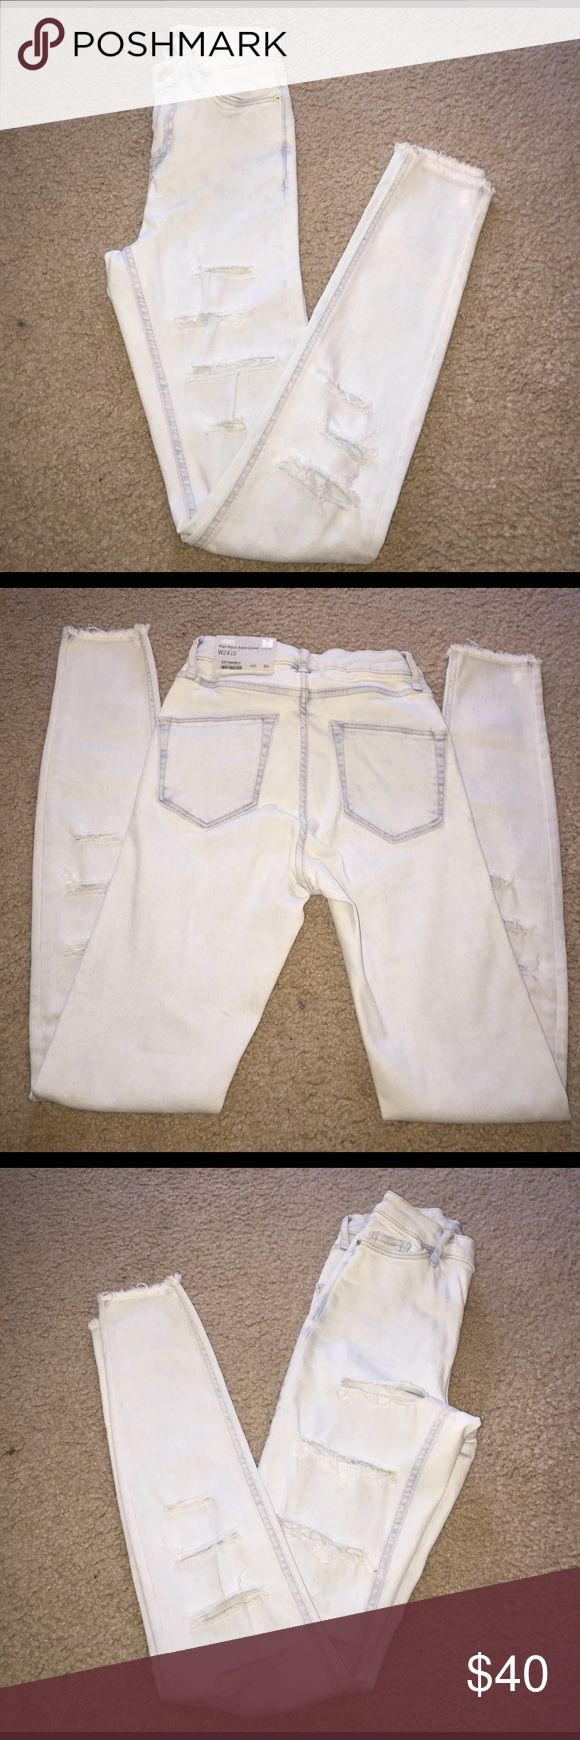 Brand New TopShop Women's High Waisted Jeans Brand new TopShop Jamie high waist ankle grazer jeans W24 L32 Topshop Jeans Ankle & Cropped